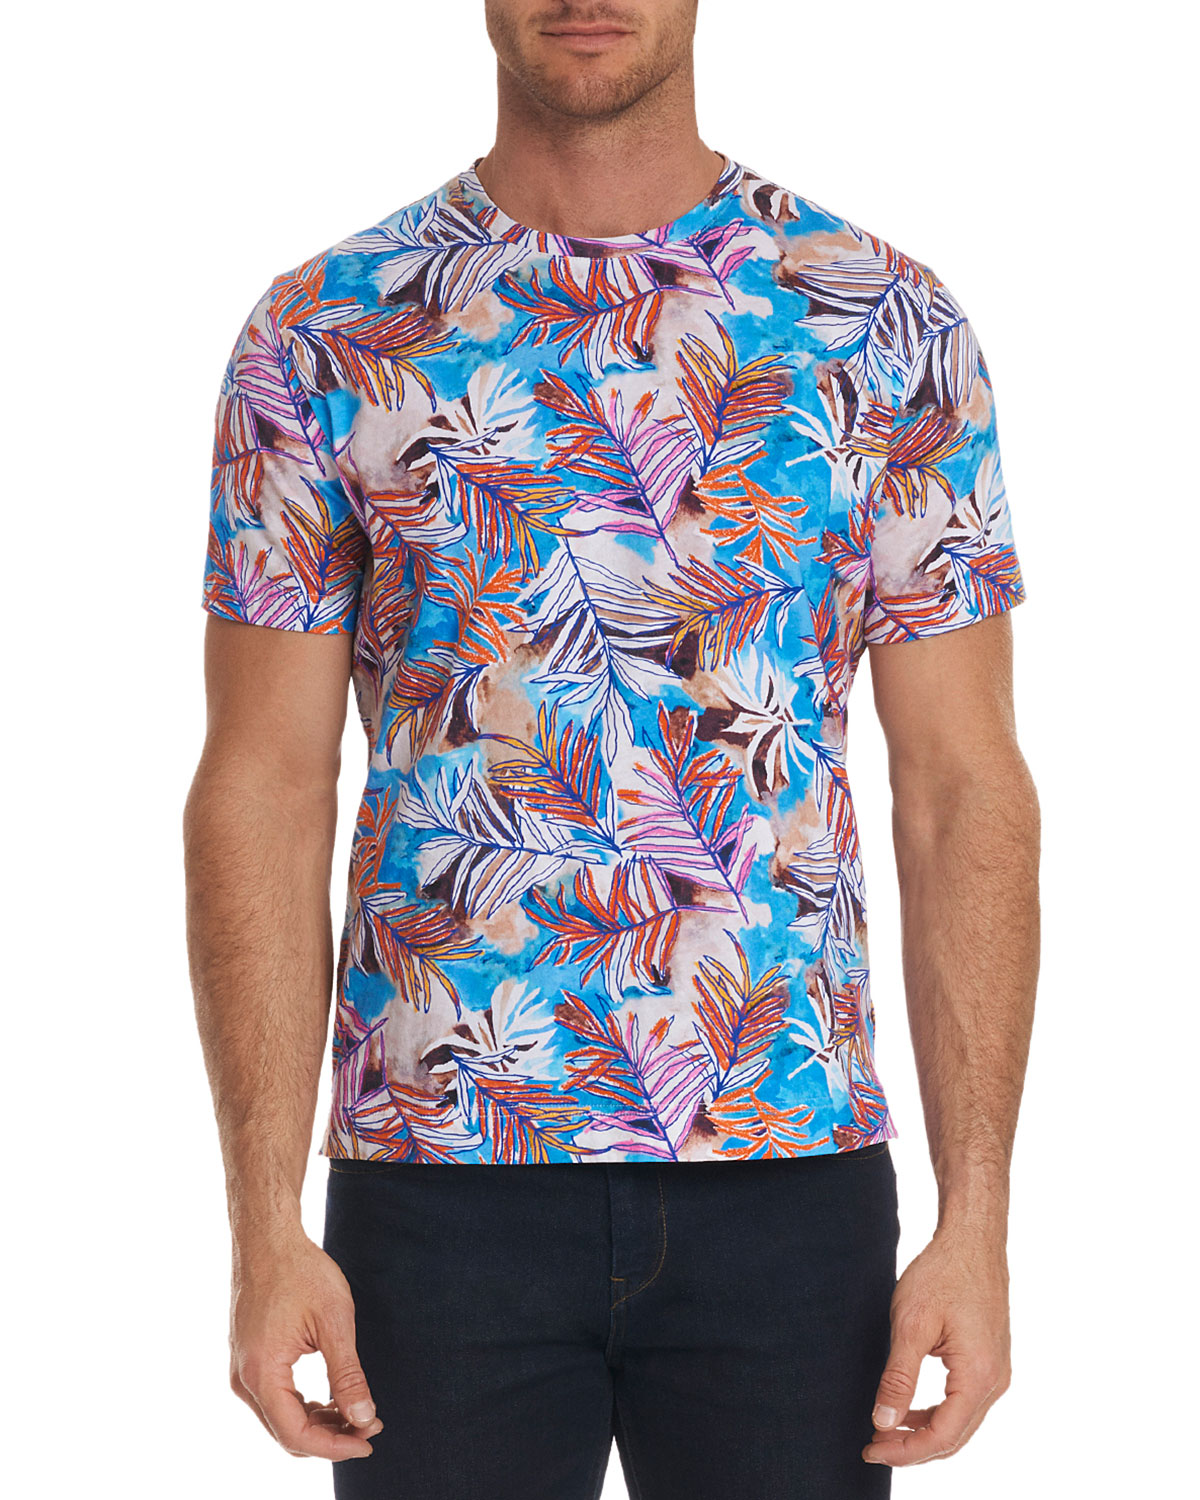 Robert Graham Mens Freshwater Graphic Print T Shirt Neiman Marcus